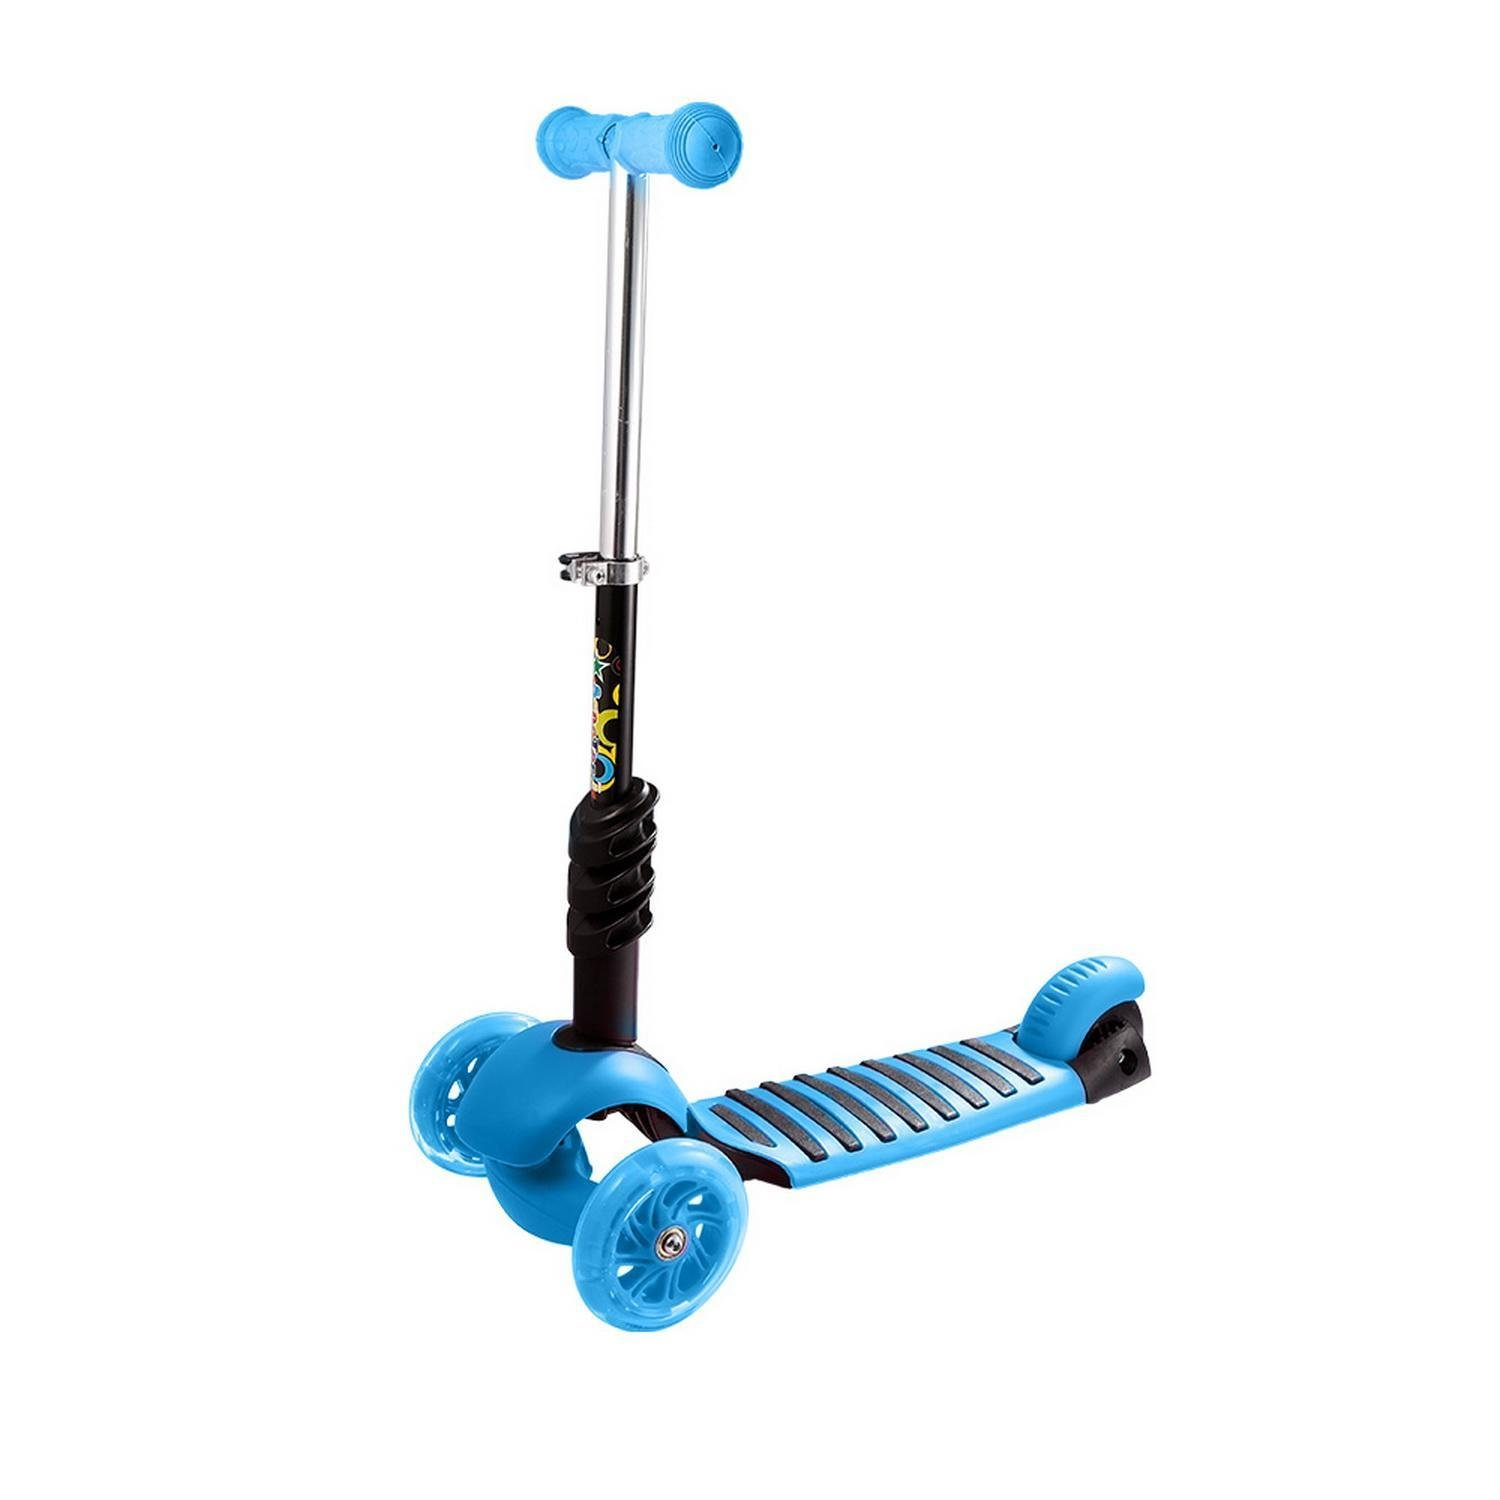 Amazon.com : Lantusi Child Kids Detachable Riding Toy, 3-Wheel Adjustable Height Kick Scooter with LED Light Up Wheels (Pink, Green and Blue) : Sports & ...